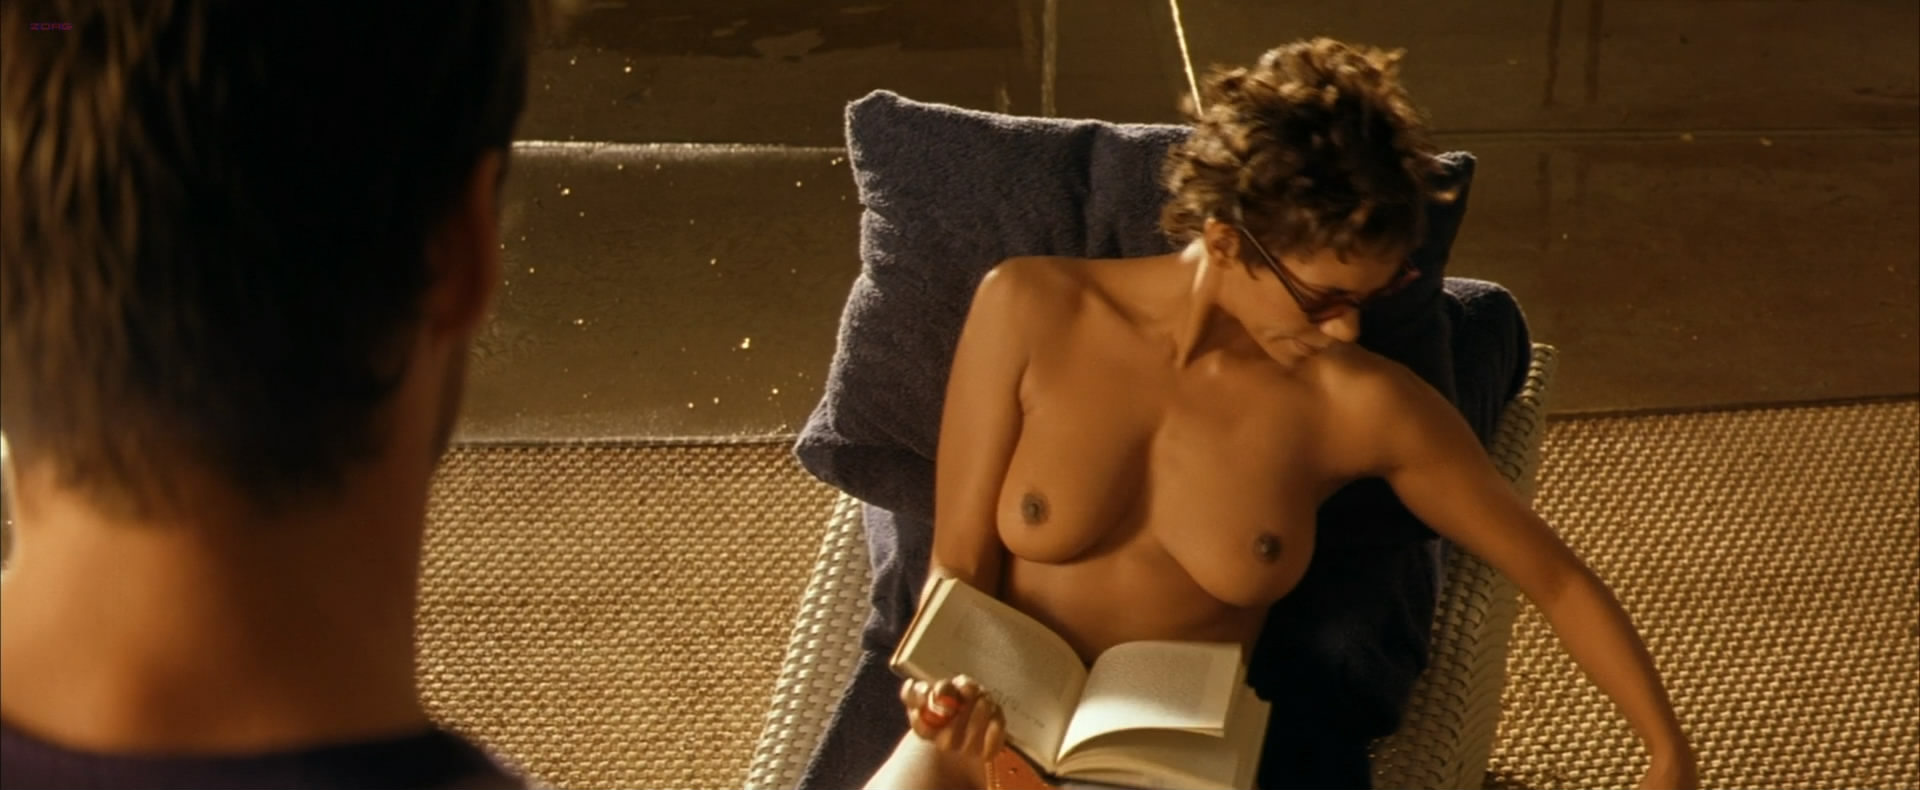 Halle Berry Nude Topless In - Swordfish 2001 Hd1080P-4522